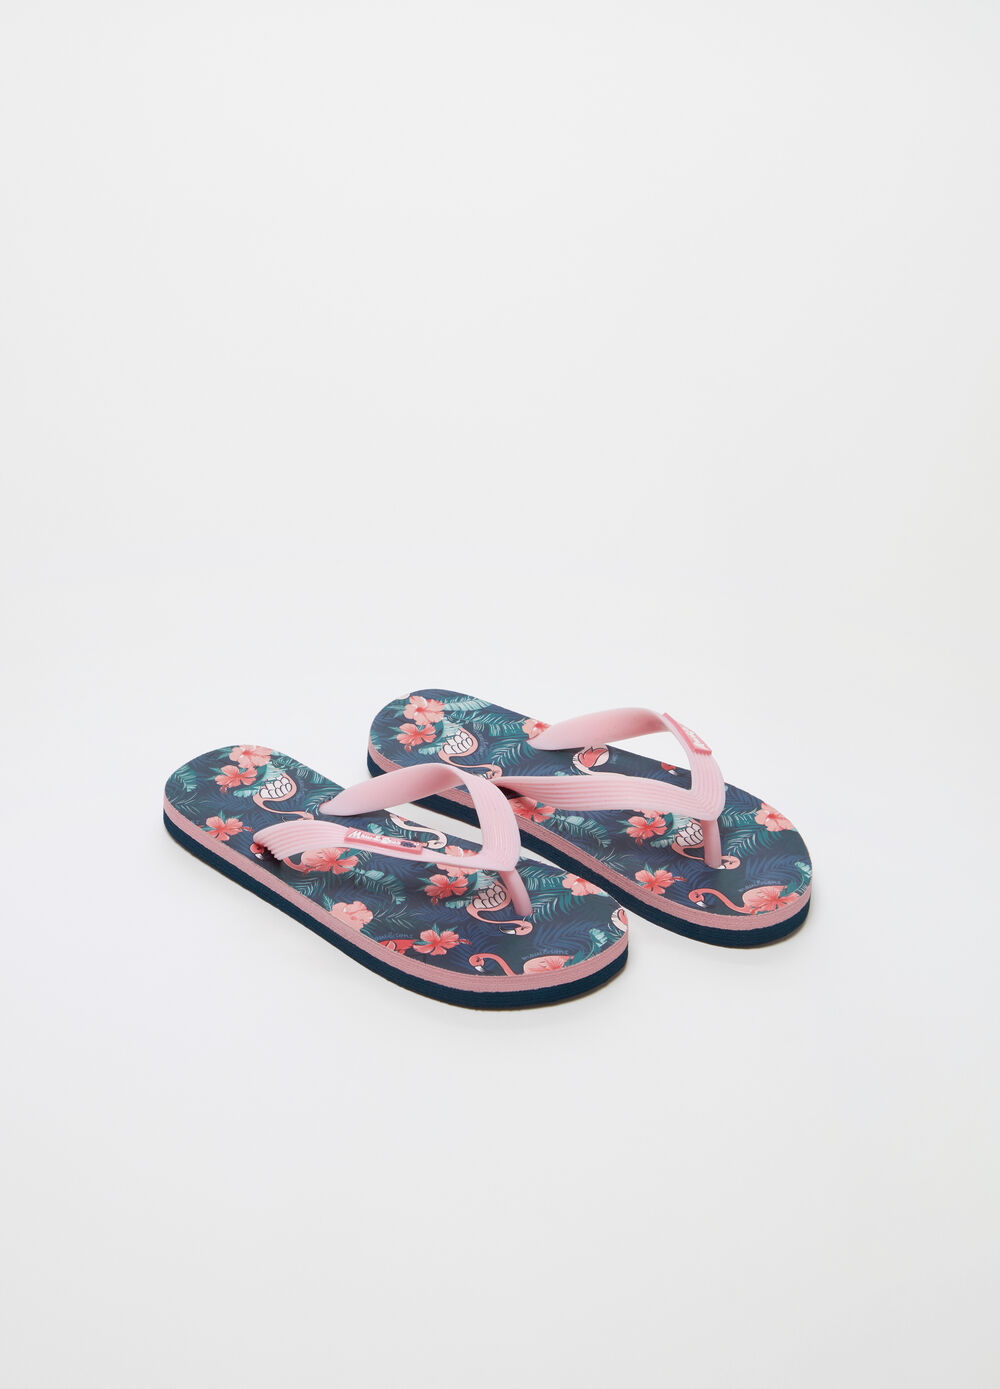 Flip flops by Maui and Sons with tropical pattern